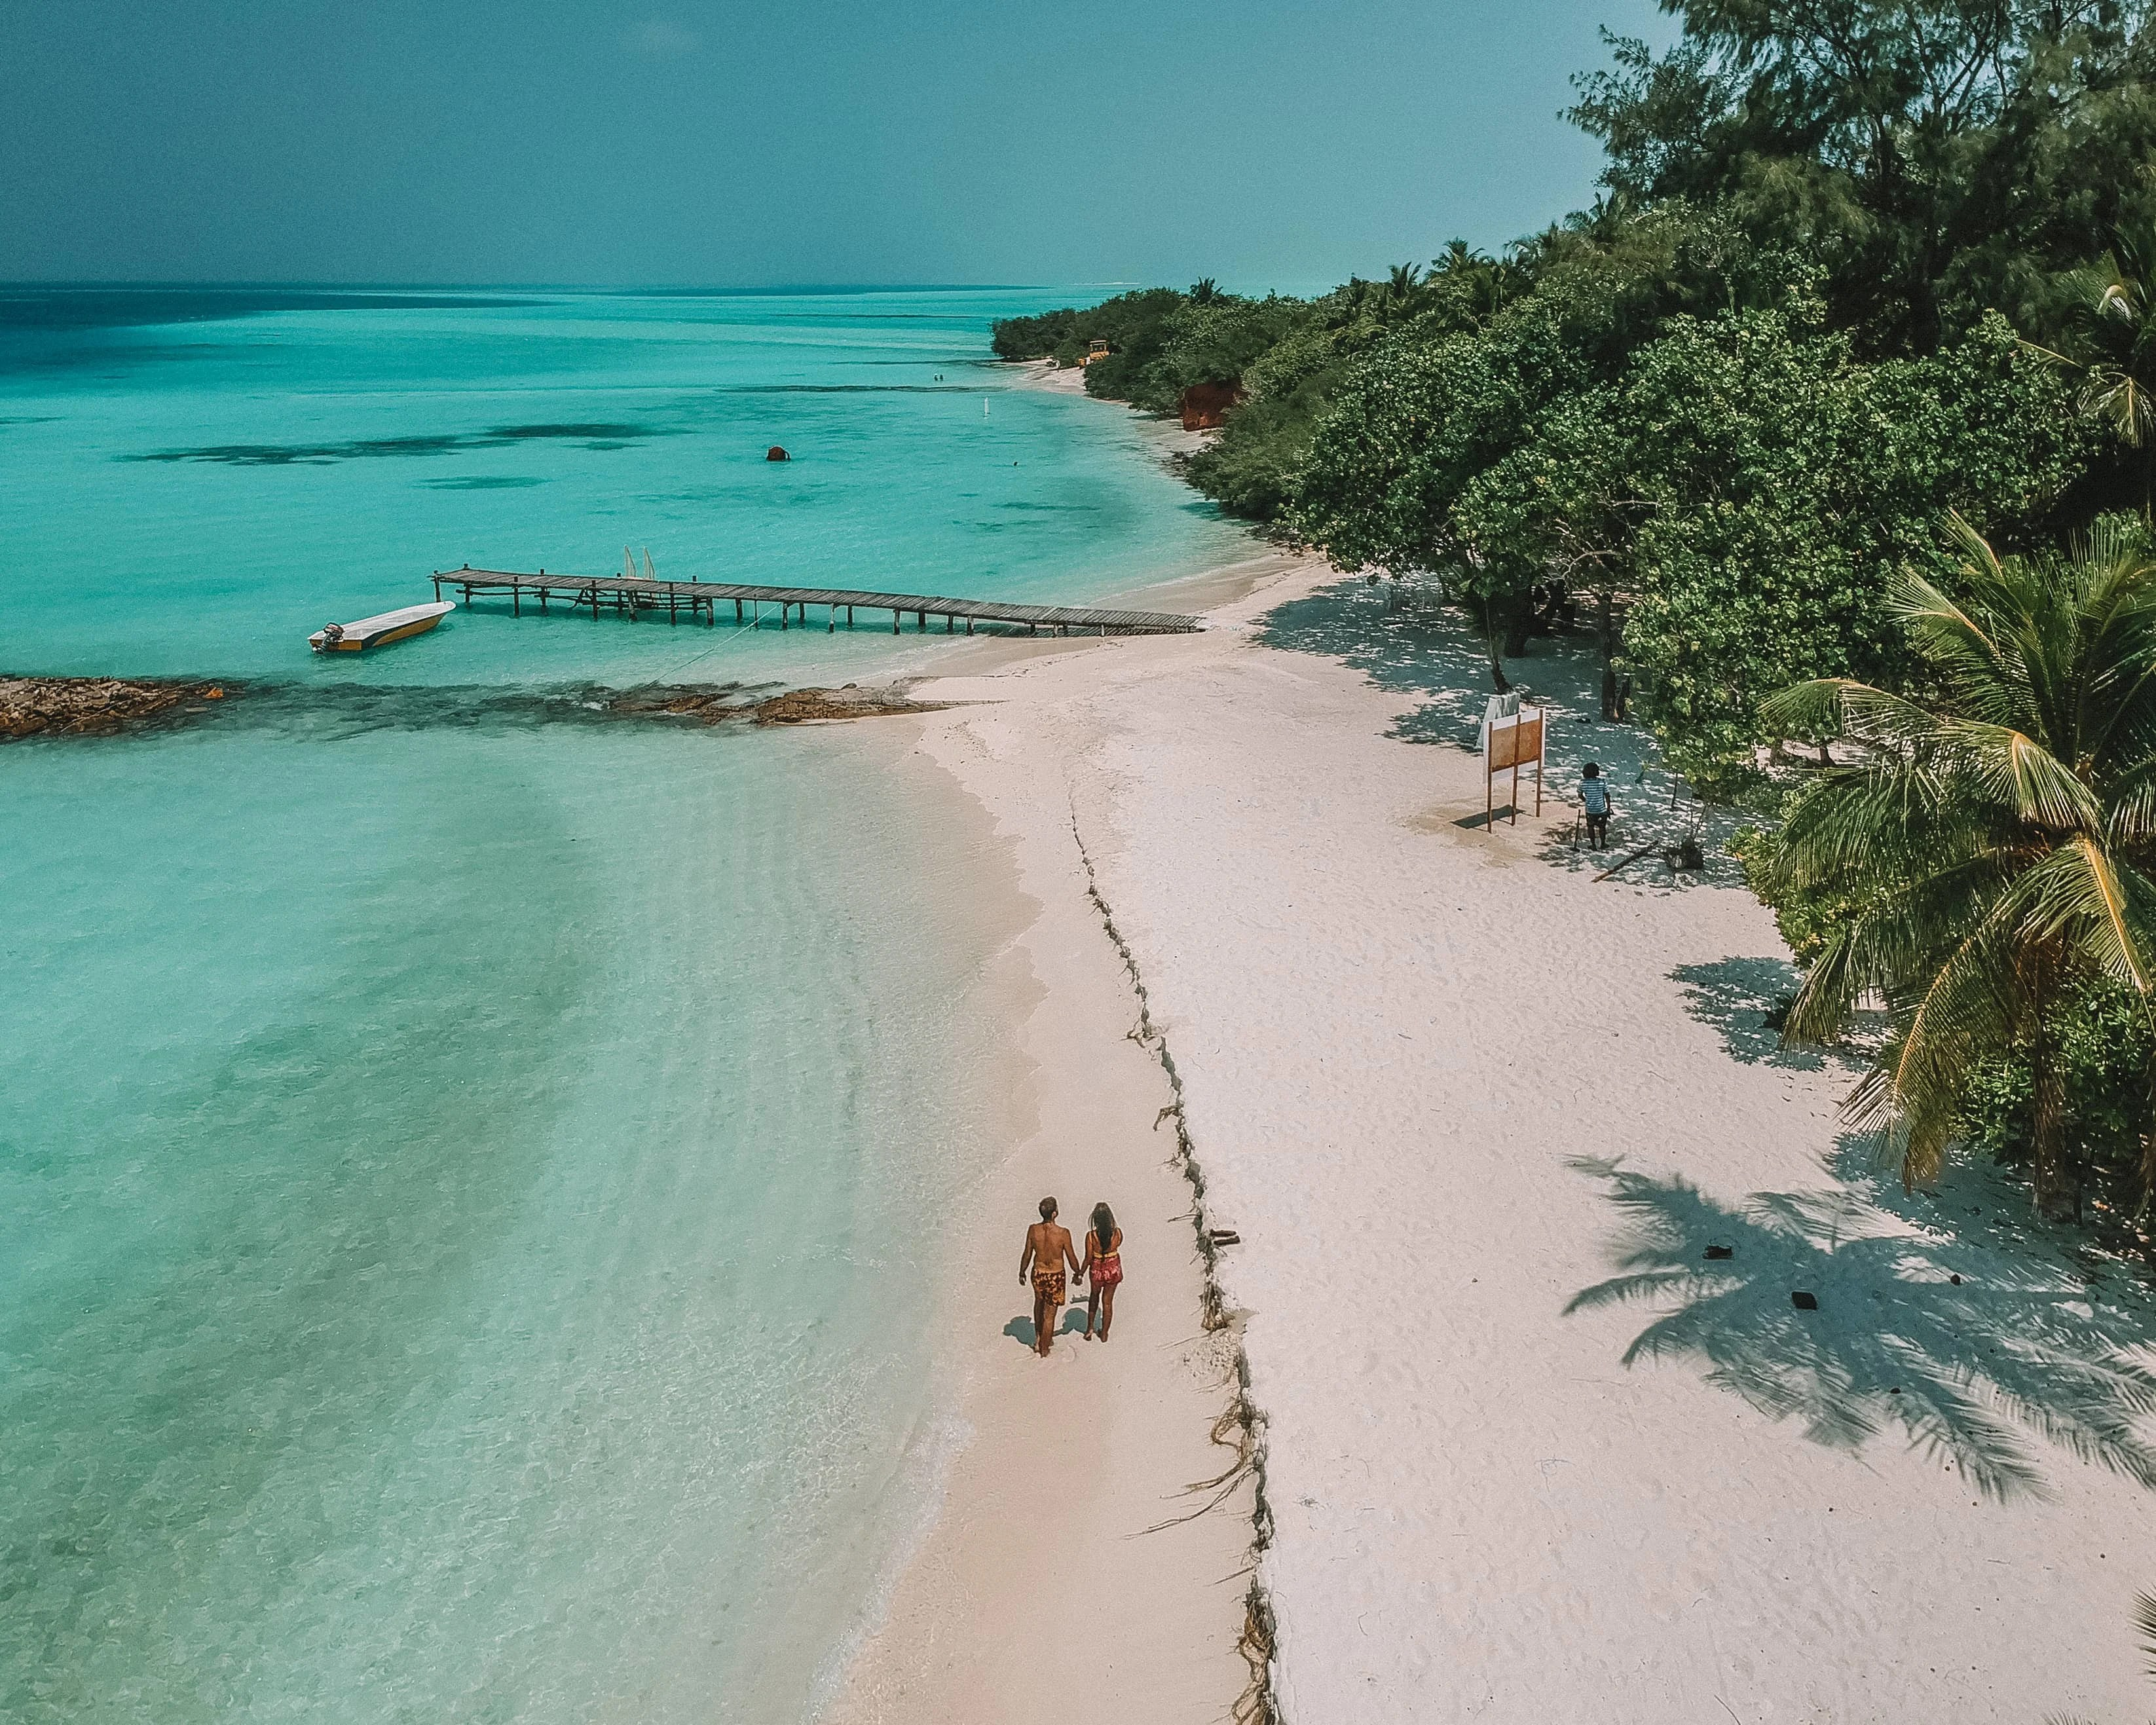 Visit Maldives On A Budget And Things To Do In Maldives (Travel Guide)